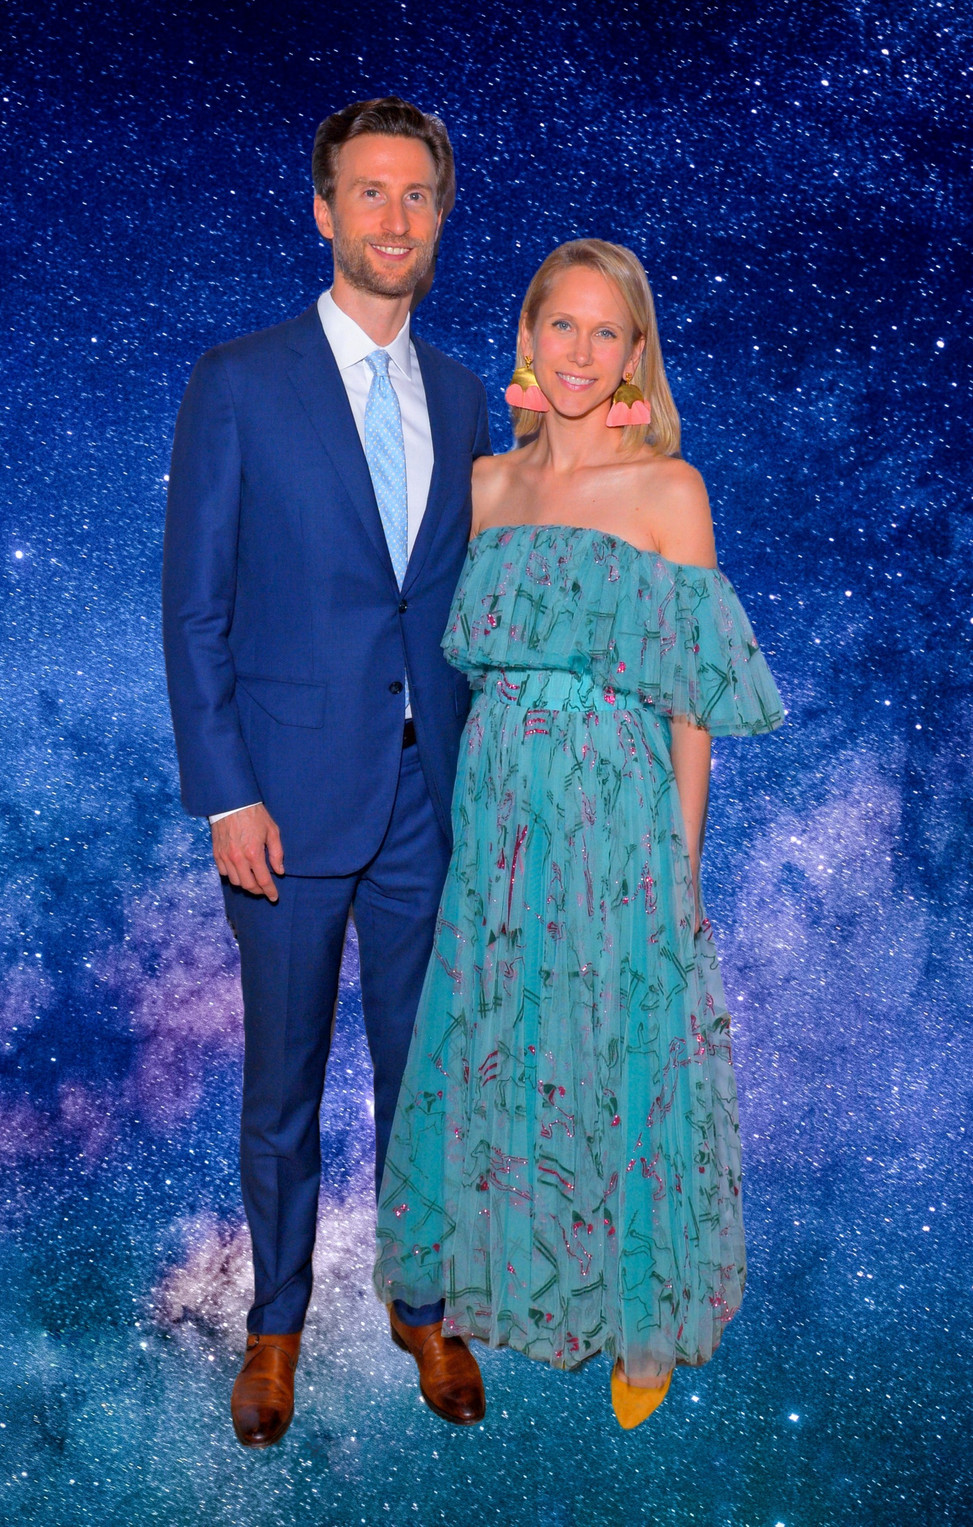 Justin Rockefeller and wife